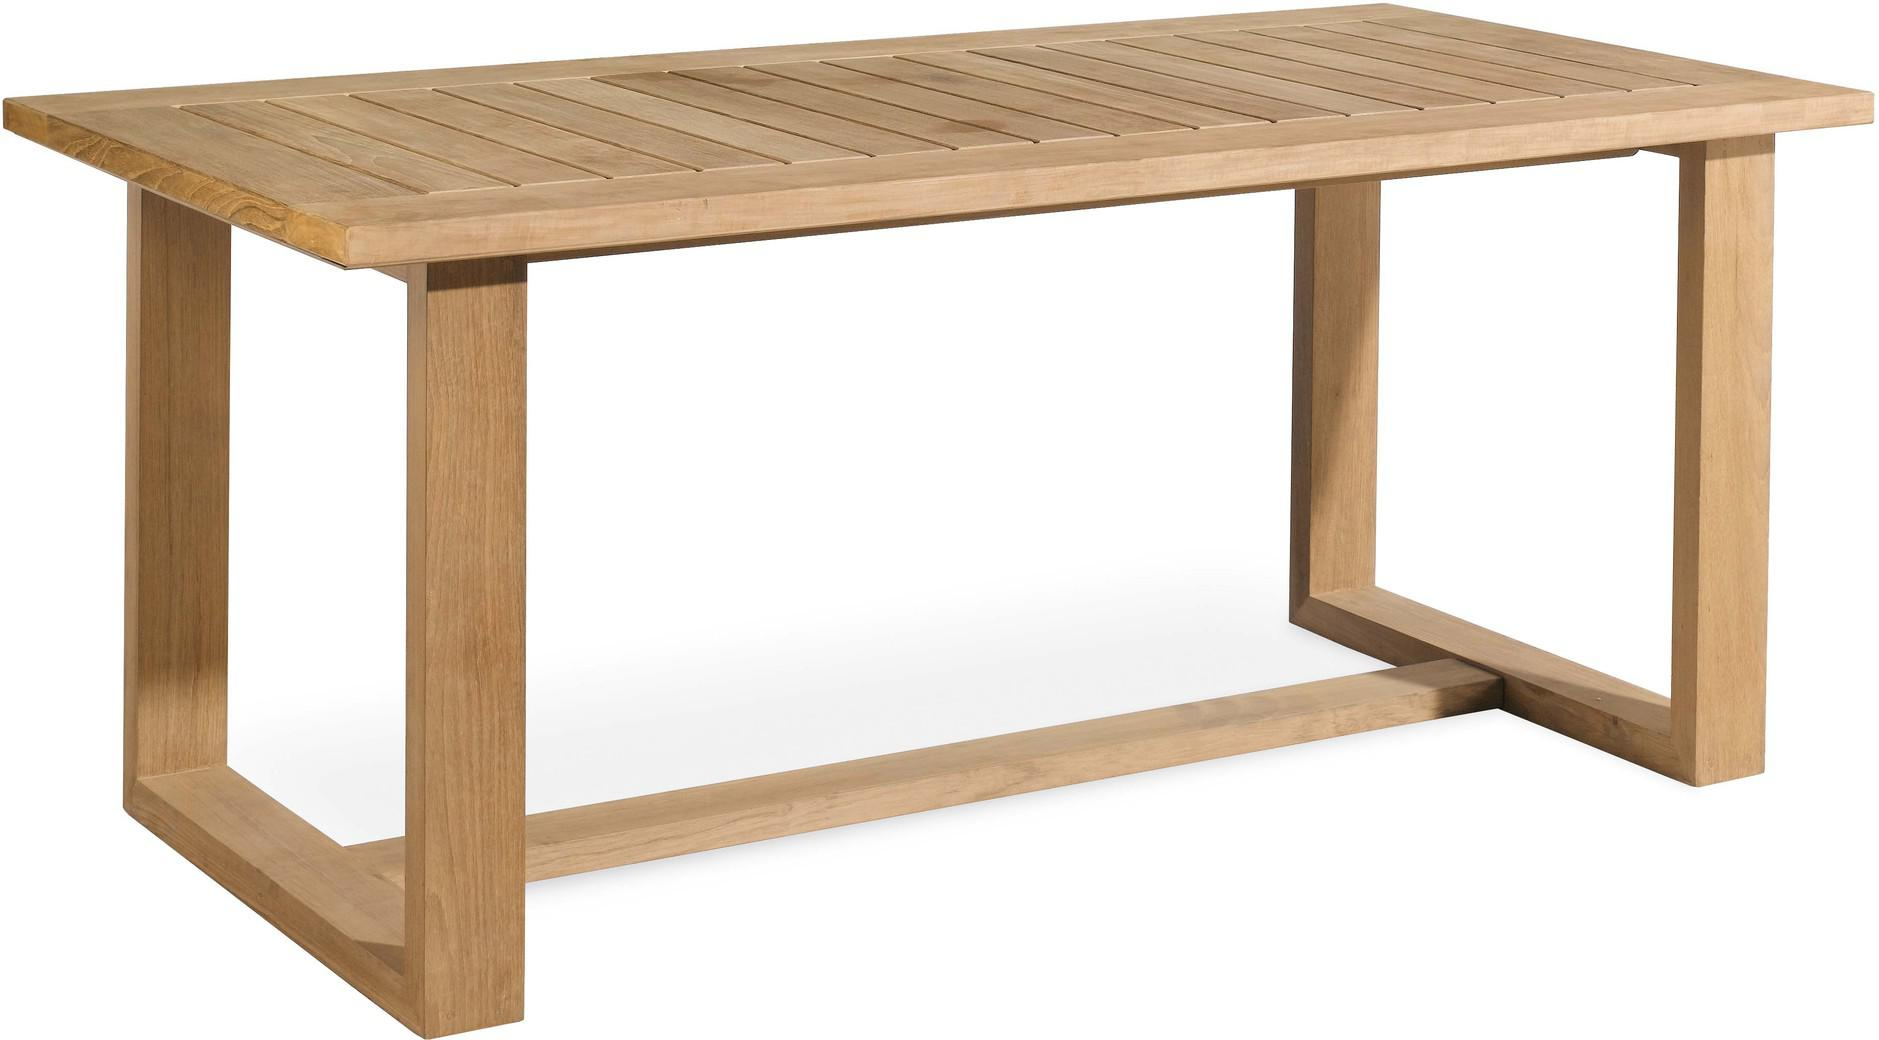 Siena Dining table - Teak - Teak 180